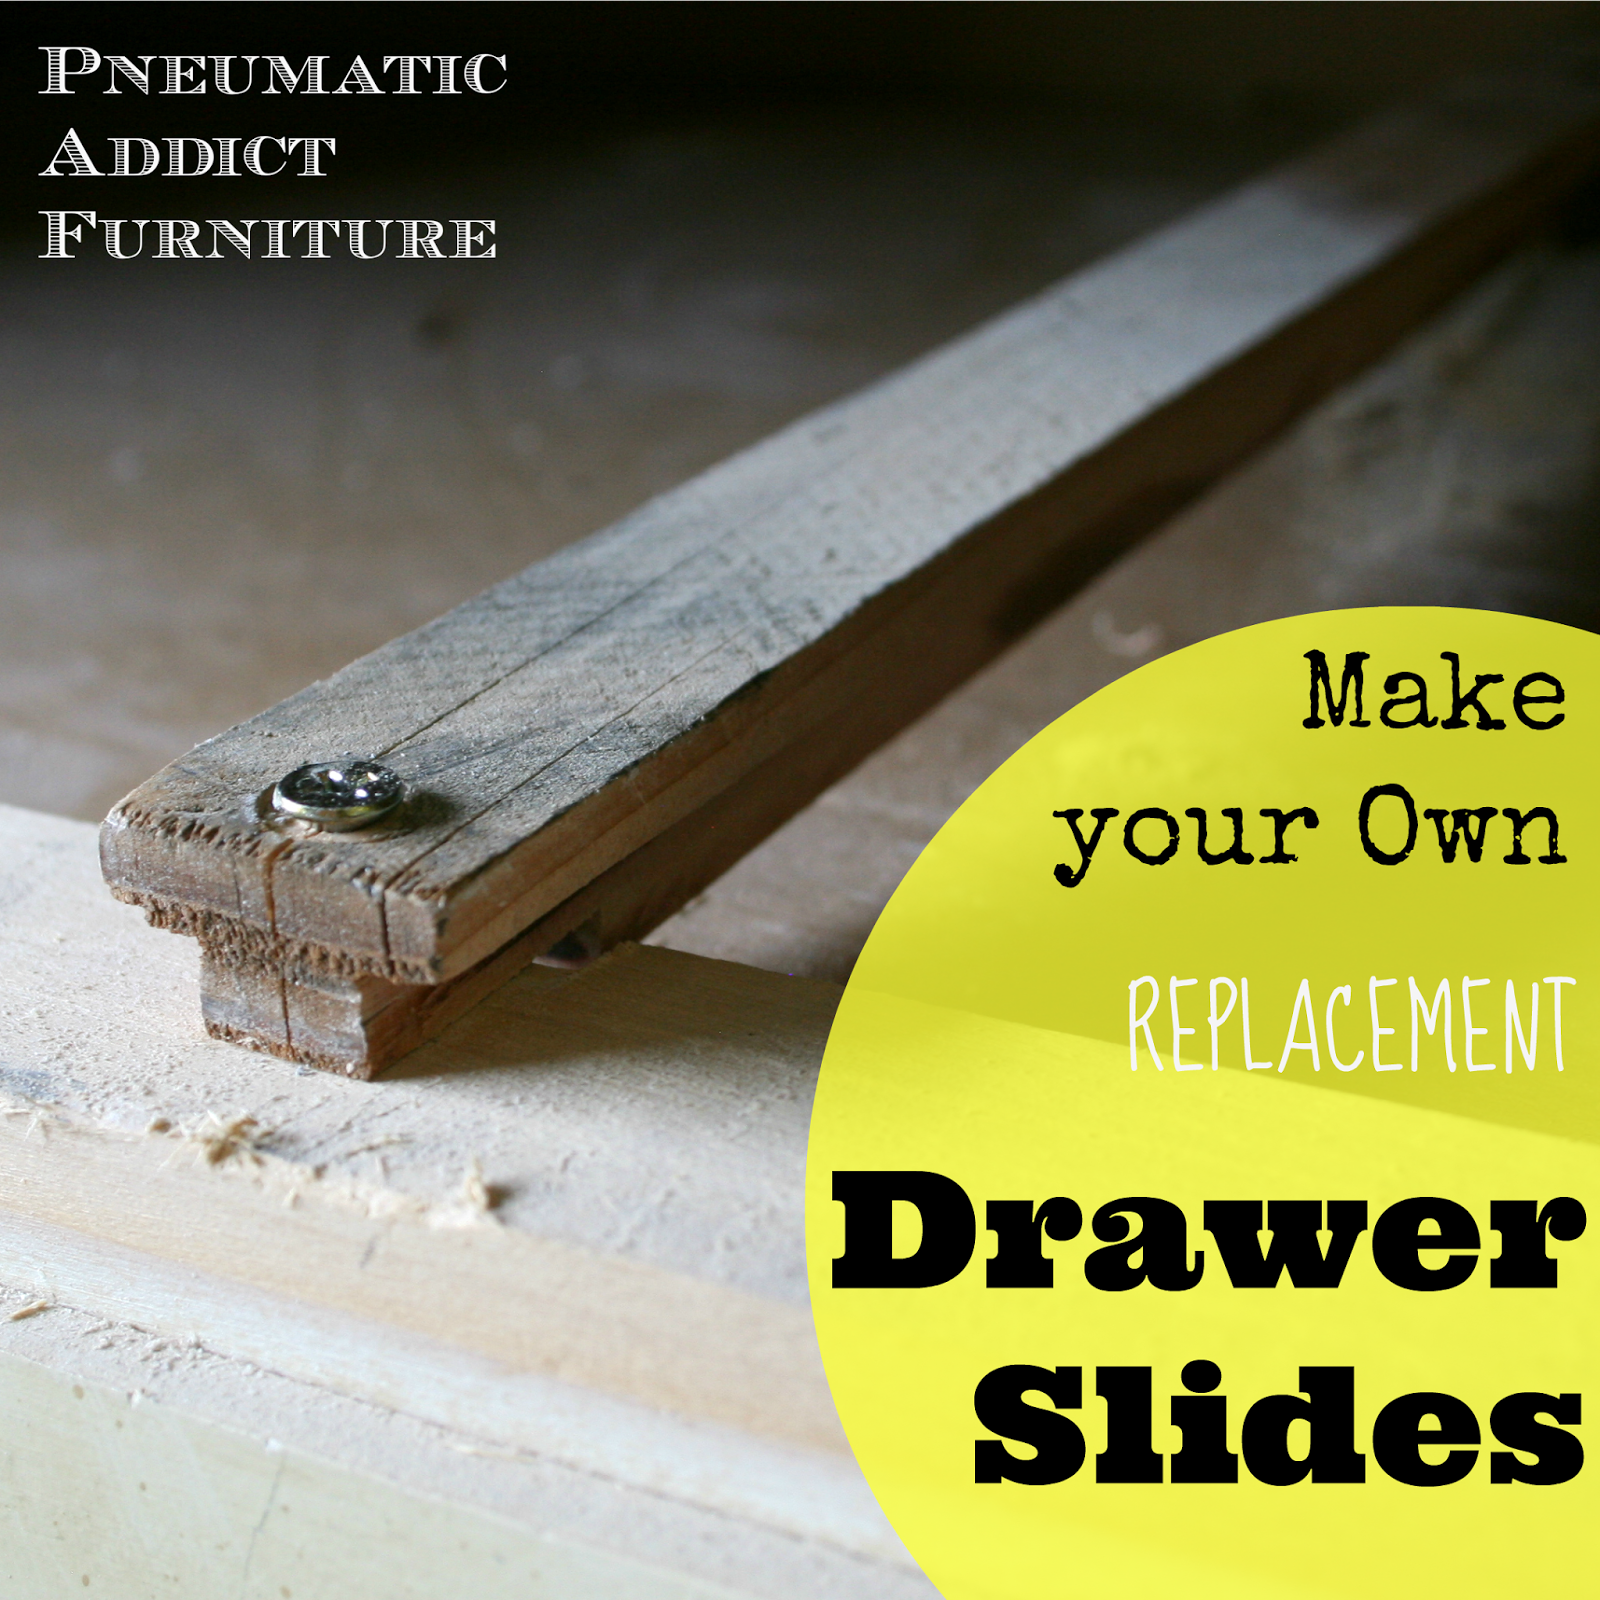 Replacement Drawer Slides >> How To Build Your Own Drawer Slides Pneumatic Addict